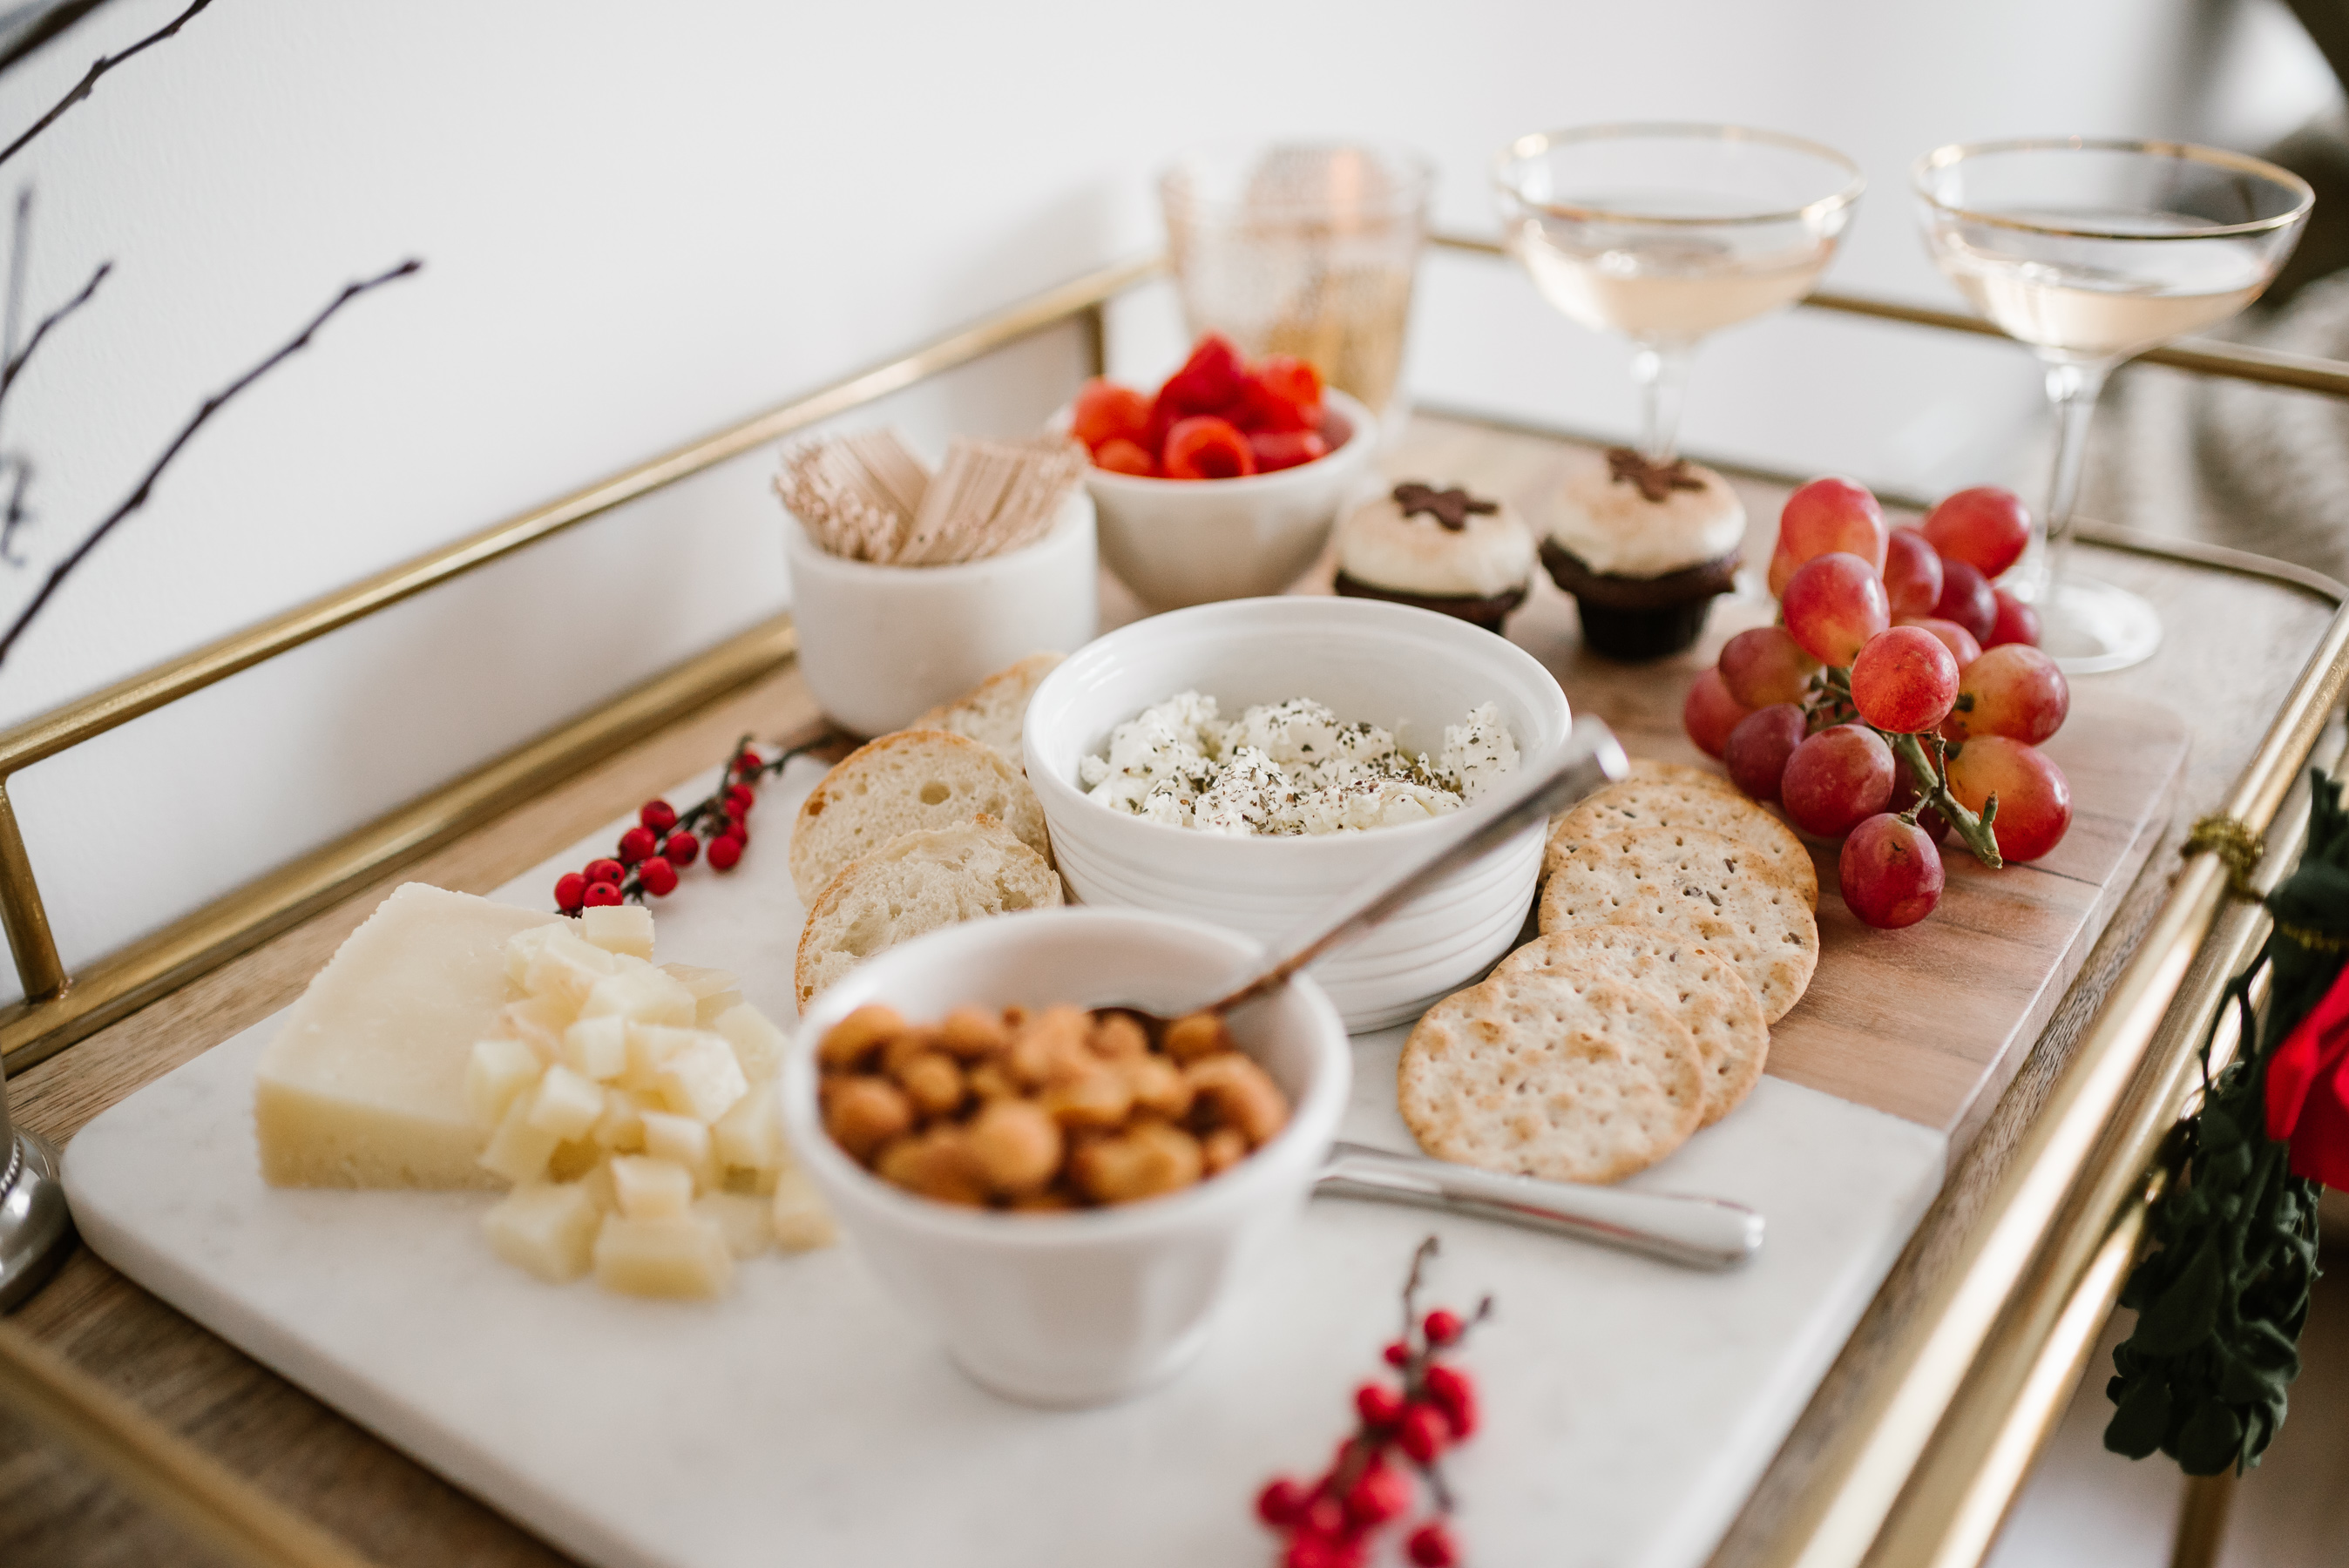 what to add to your cheese plate